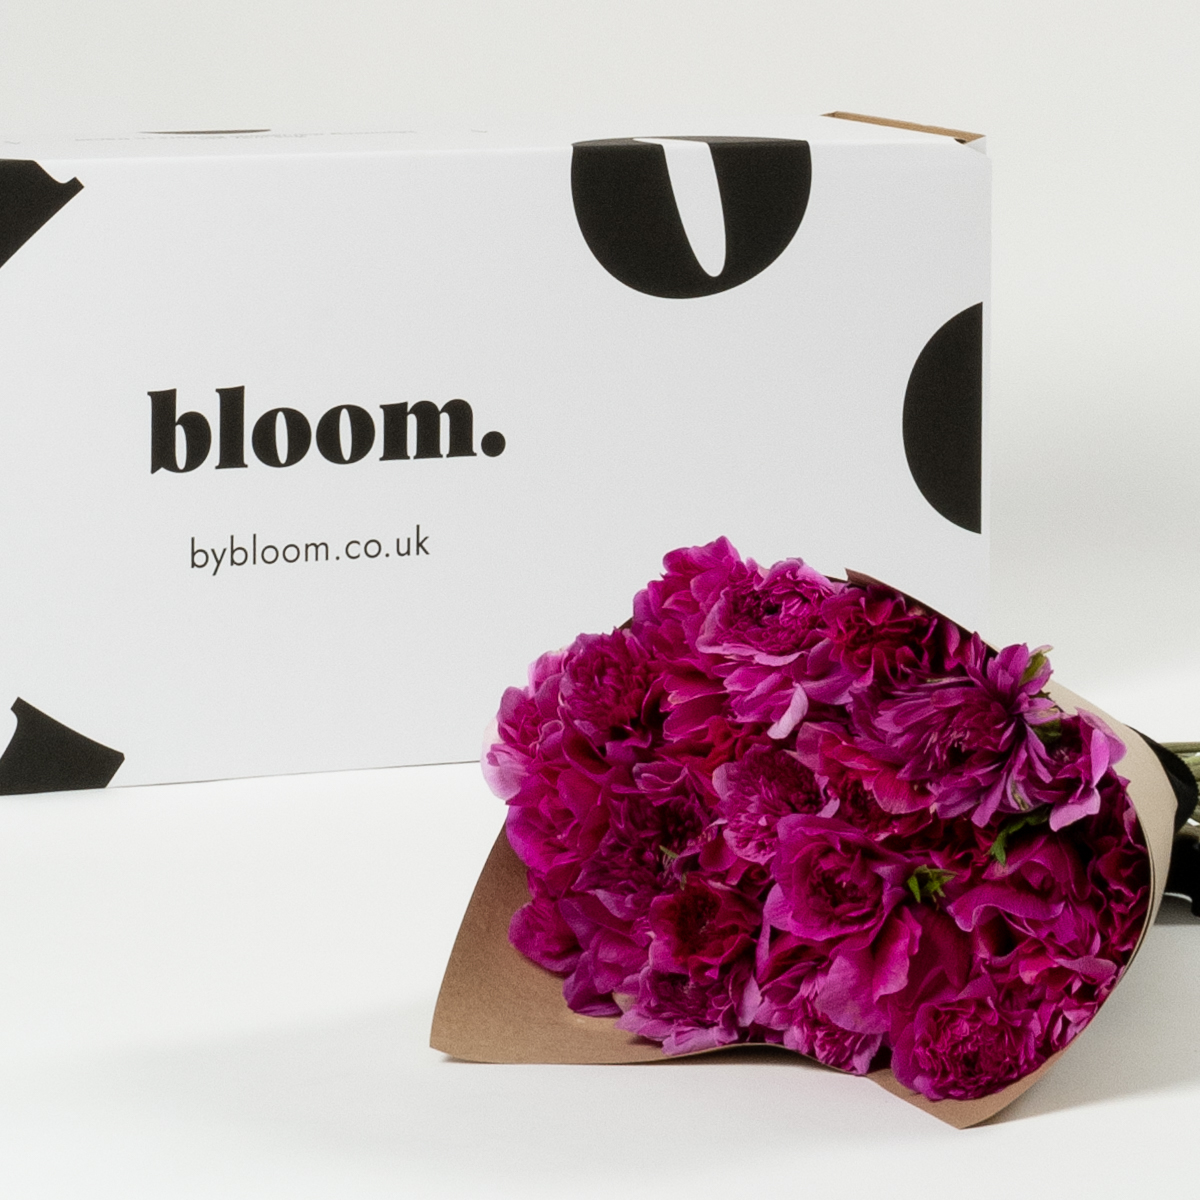 Bloom Flower Delivery | Cerise Pink Full Star Anemones